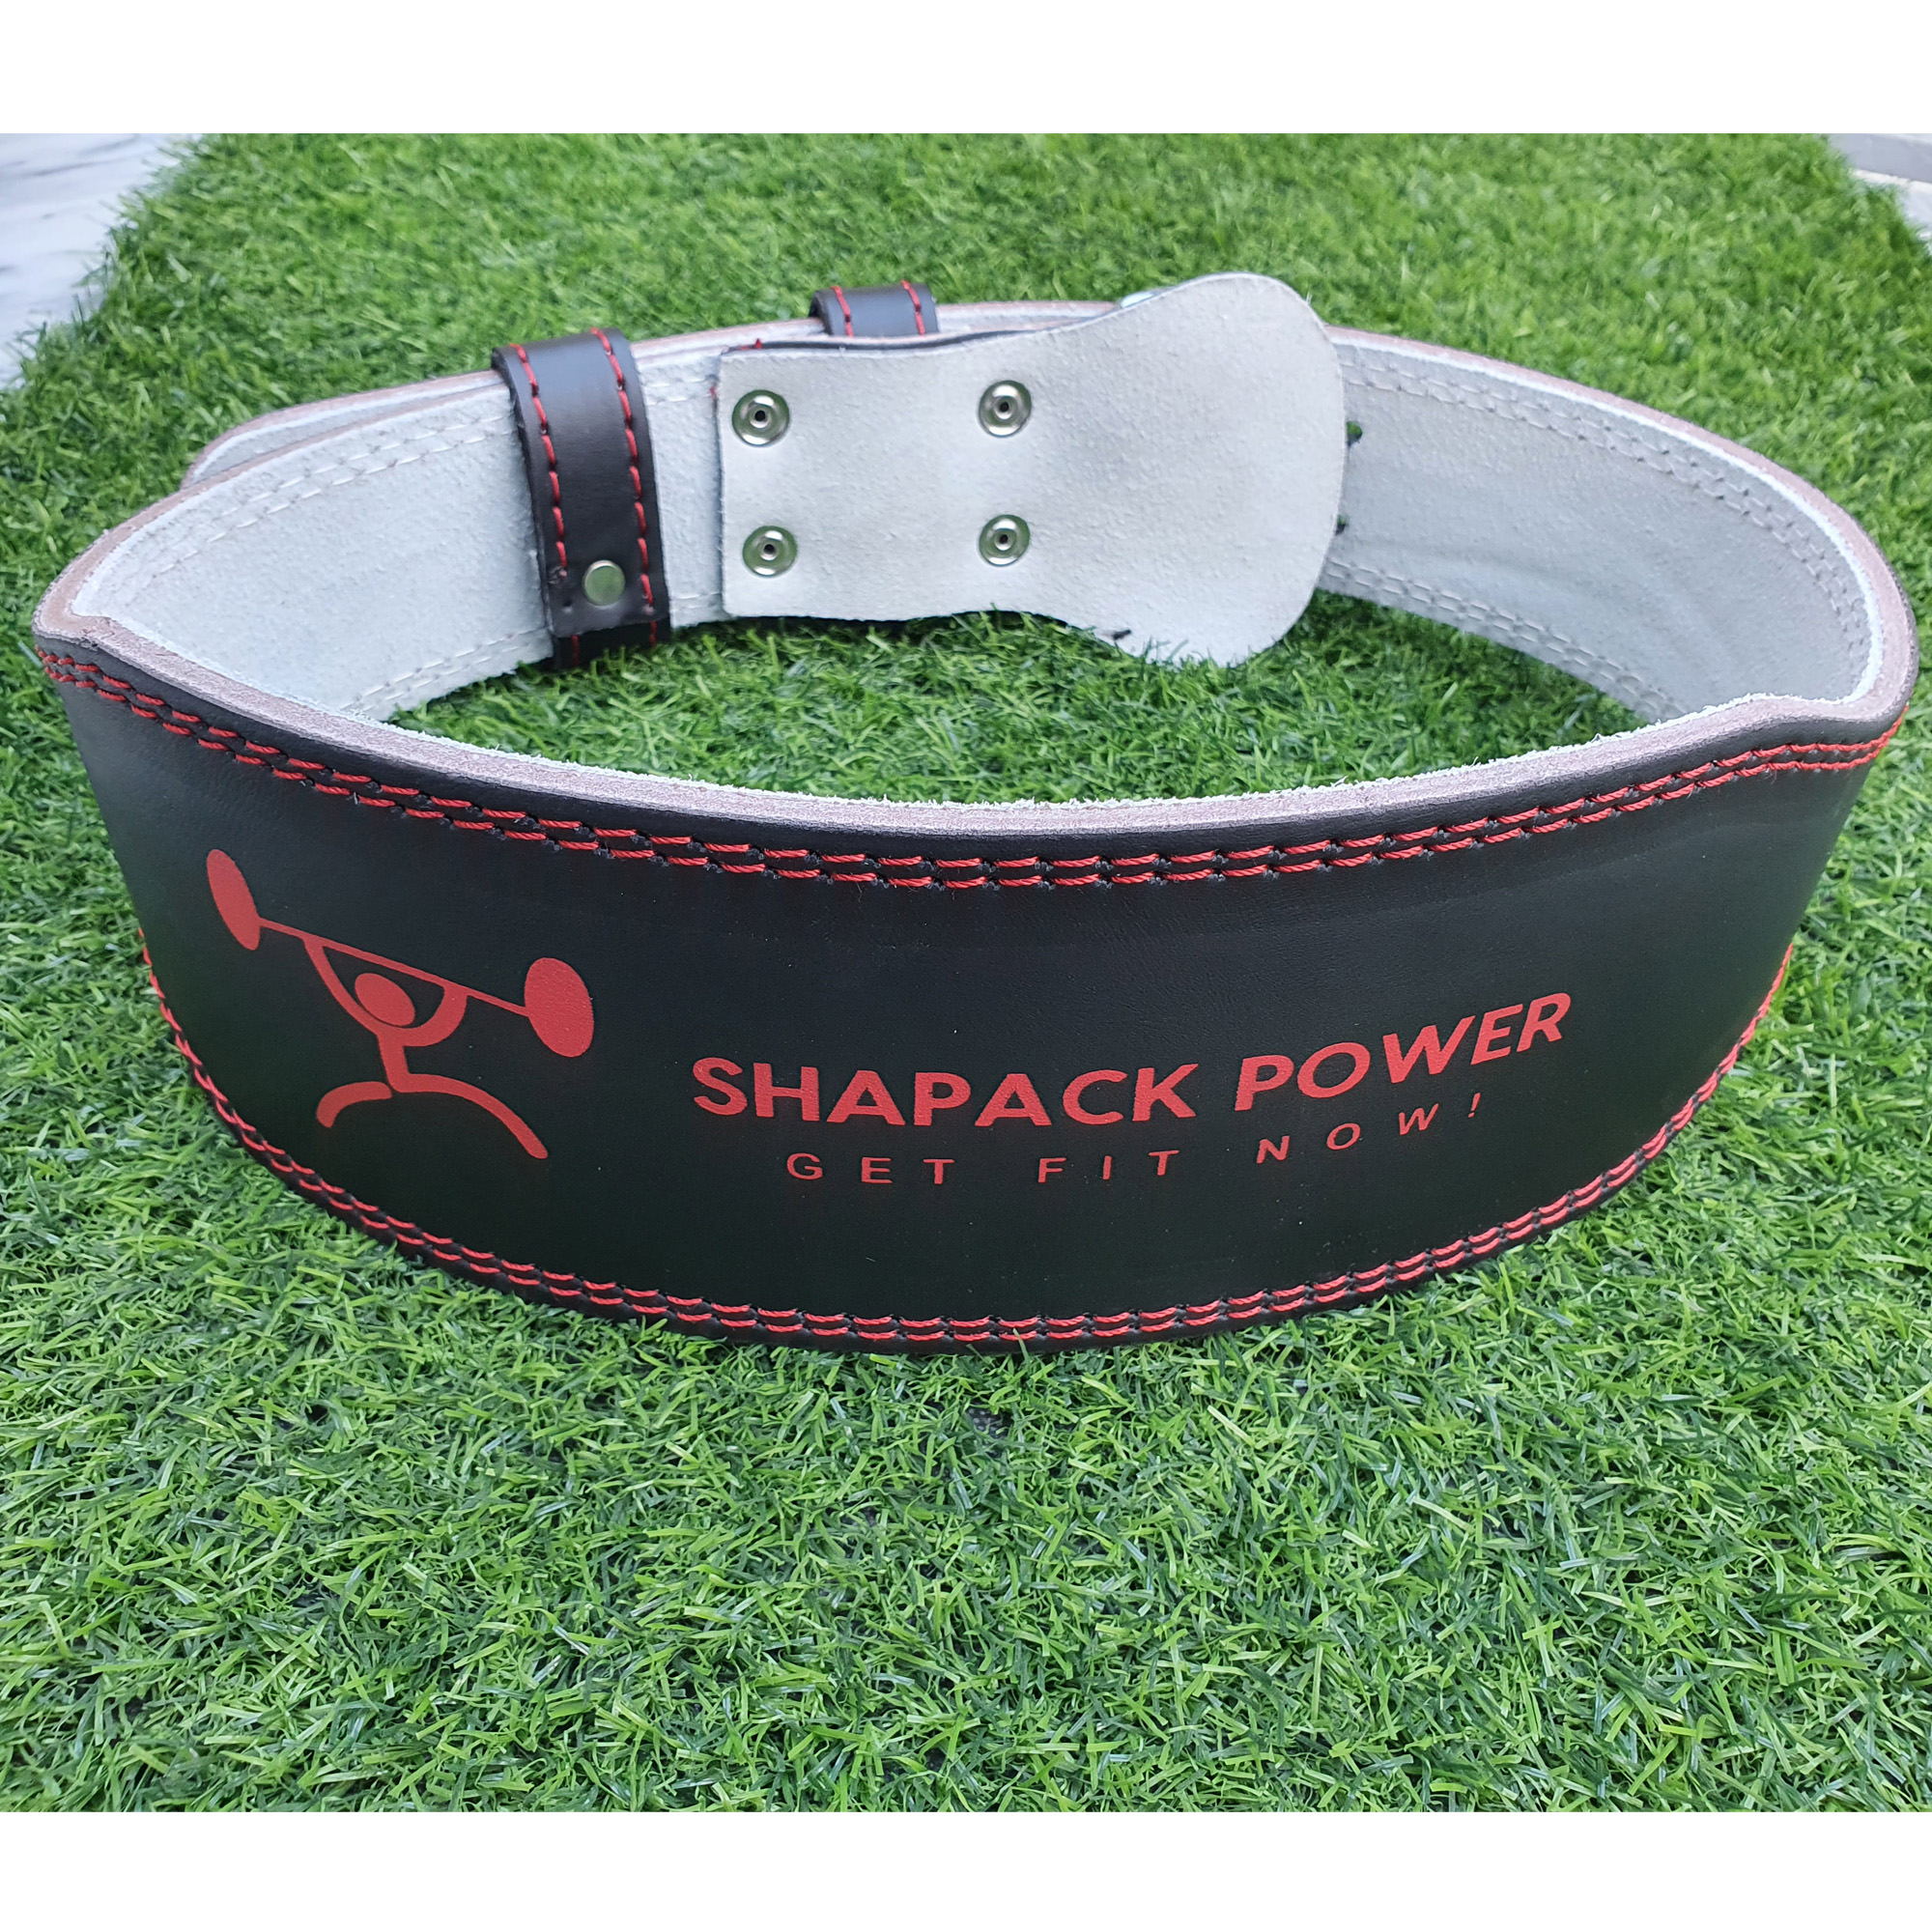 Leather Weight Lifting back support padded comfortable gym workout belt with stainless steel buckle